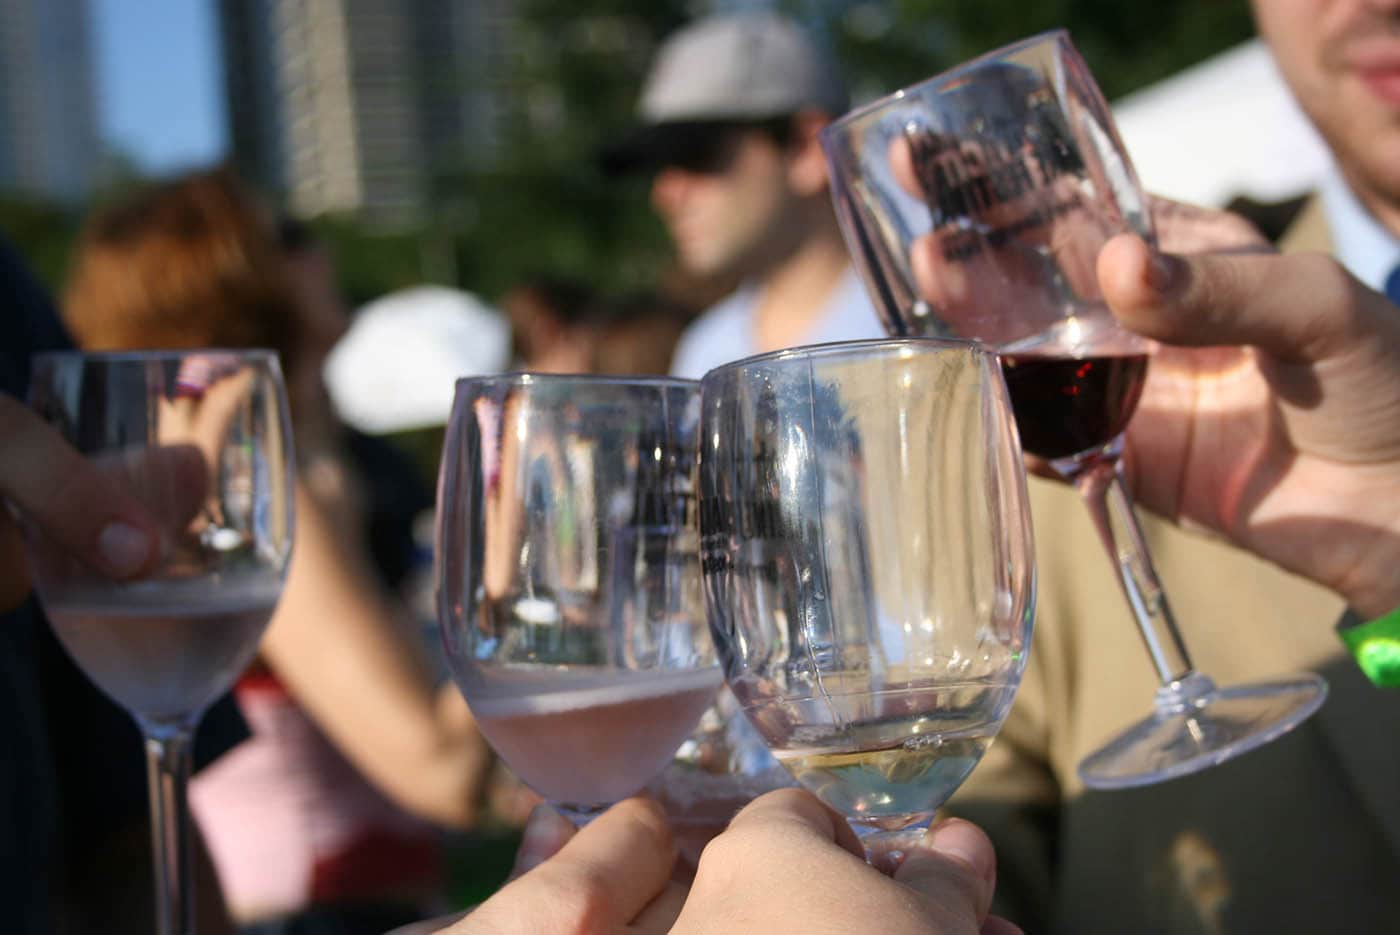 Windy City Wine Festival in Chicago, Illinois.